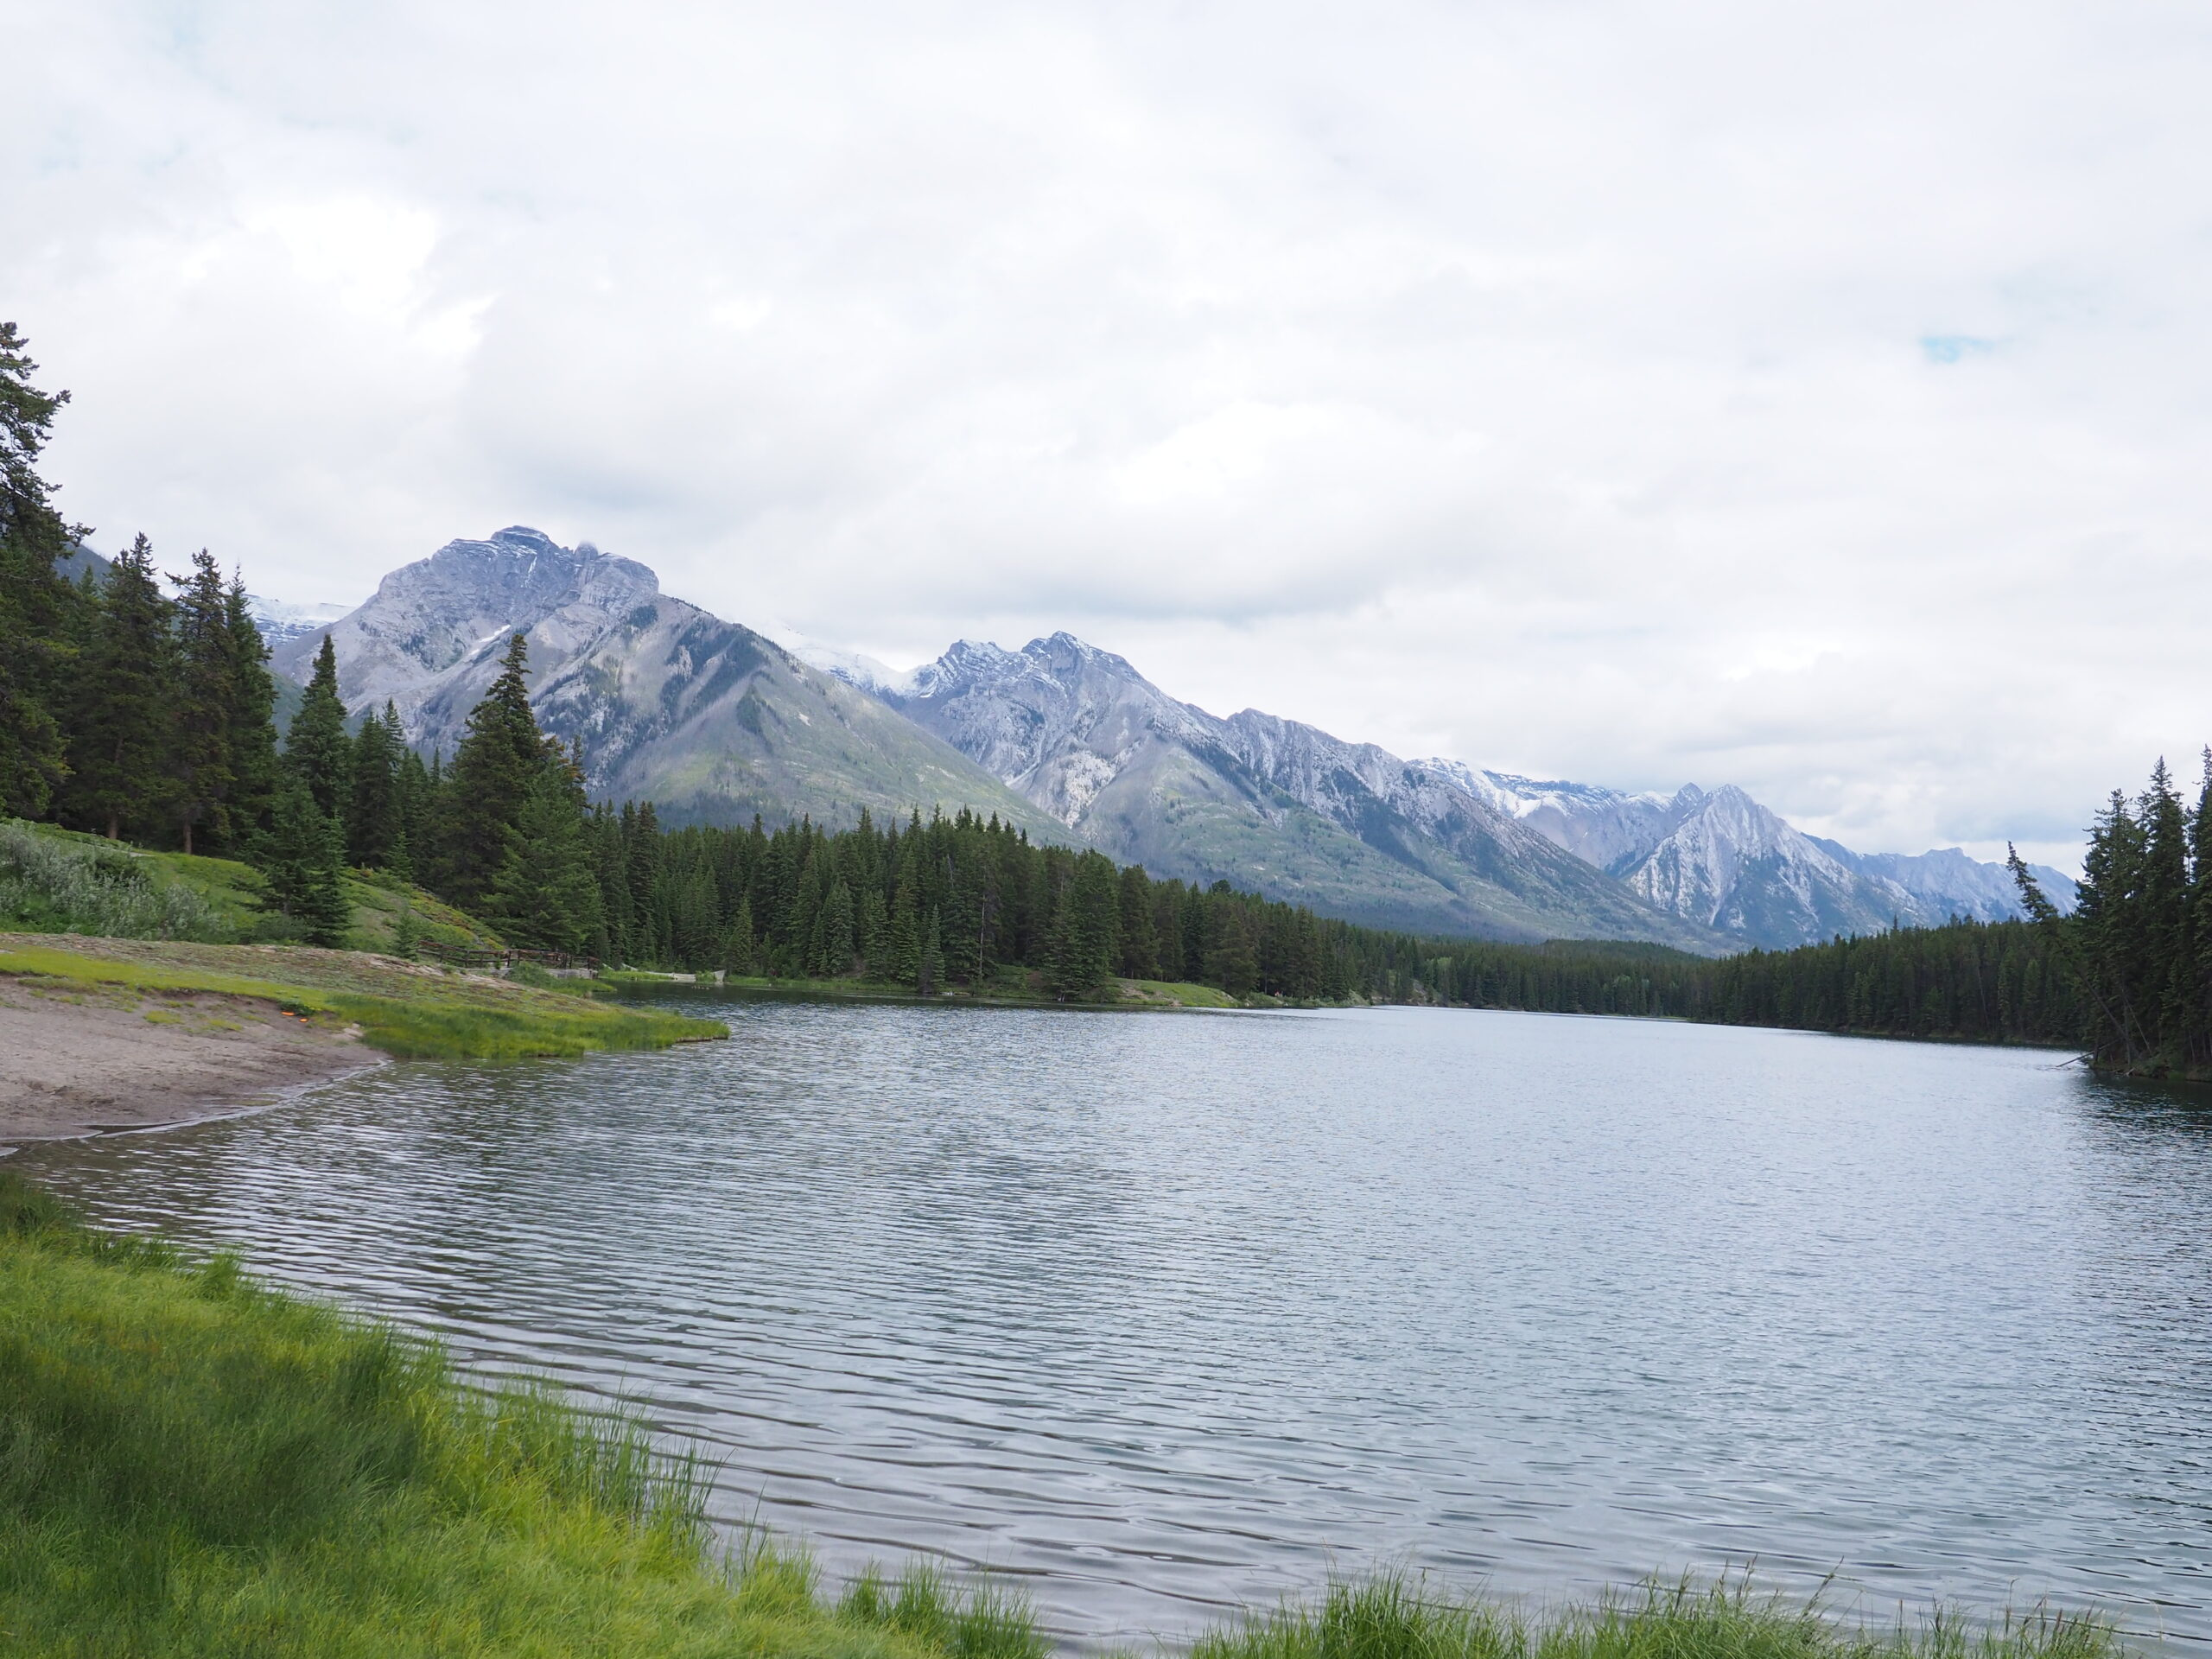 Johnson Lake, Banff National Park